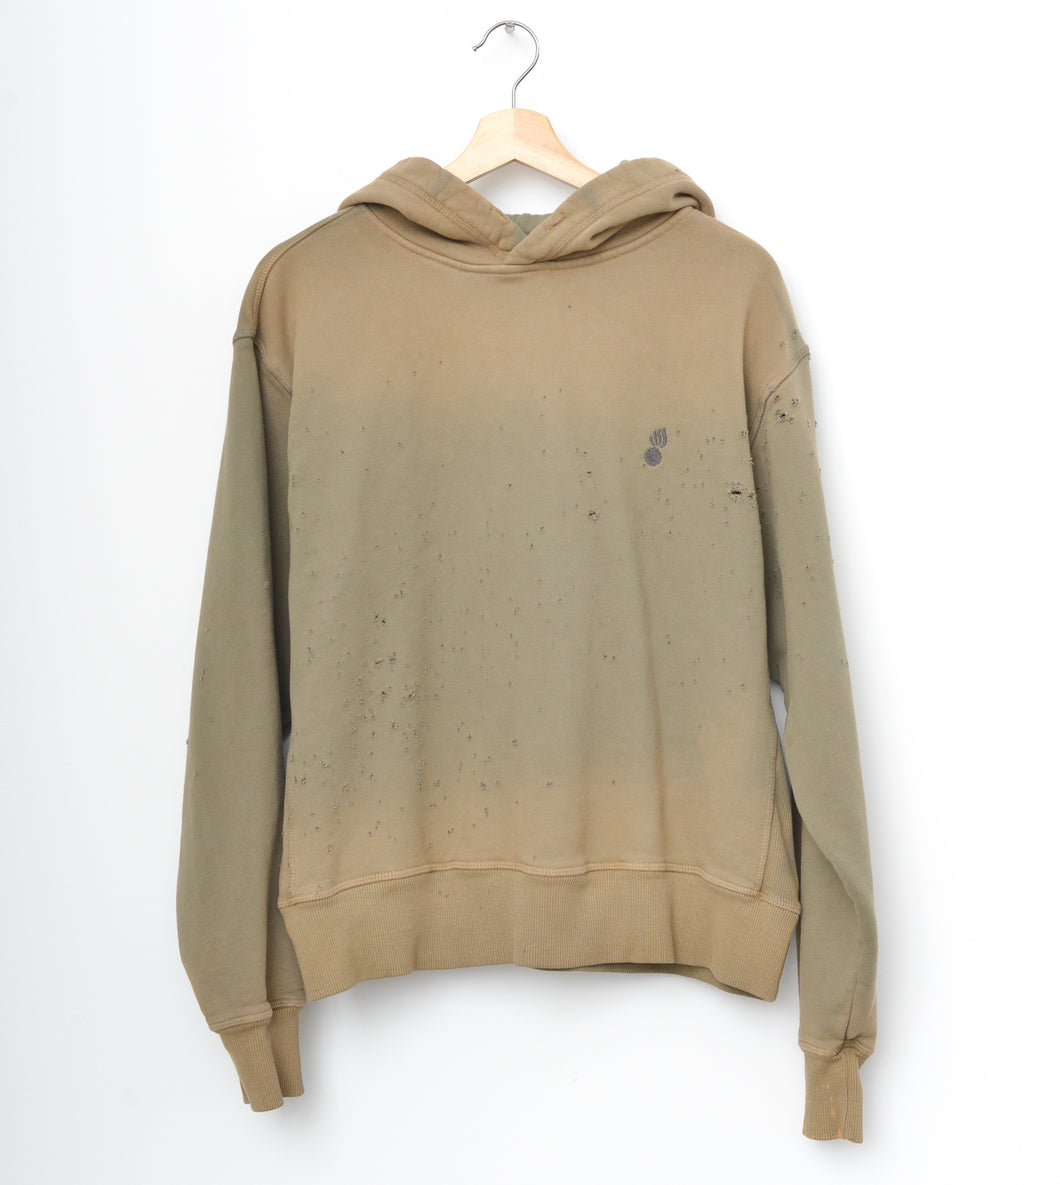 JAMYLA SPECIAL SHOTGUN DISTRESS HOODIE IN SAGE GREEN